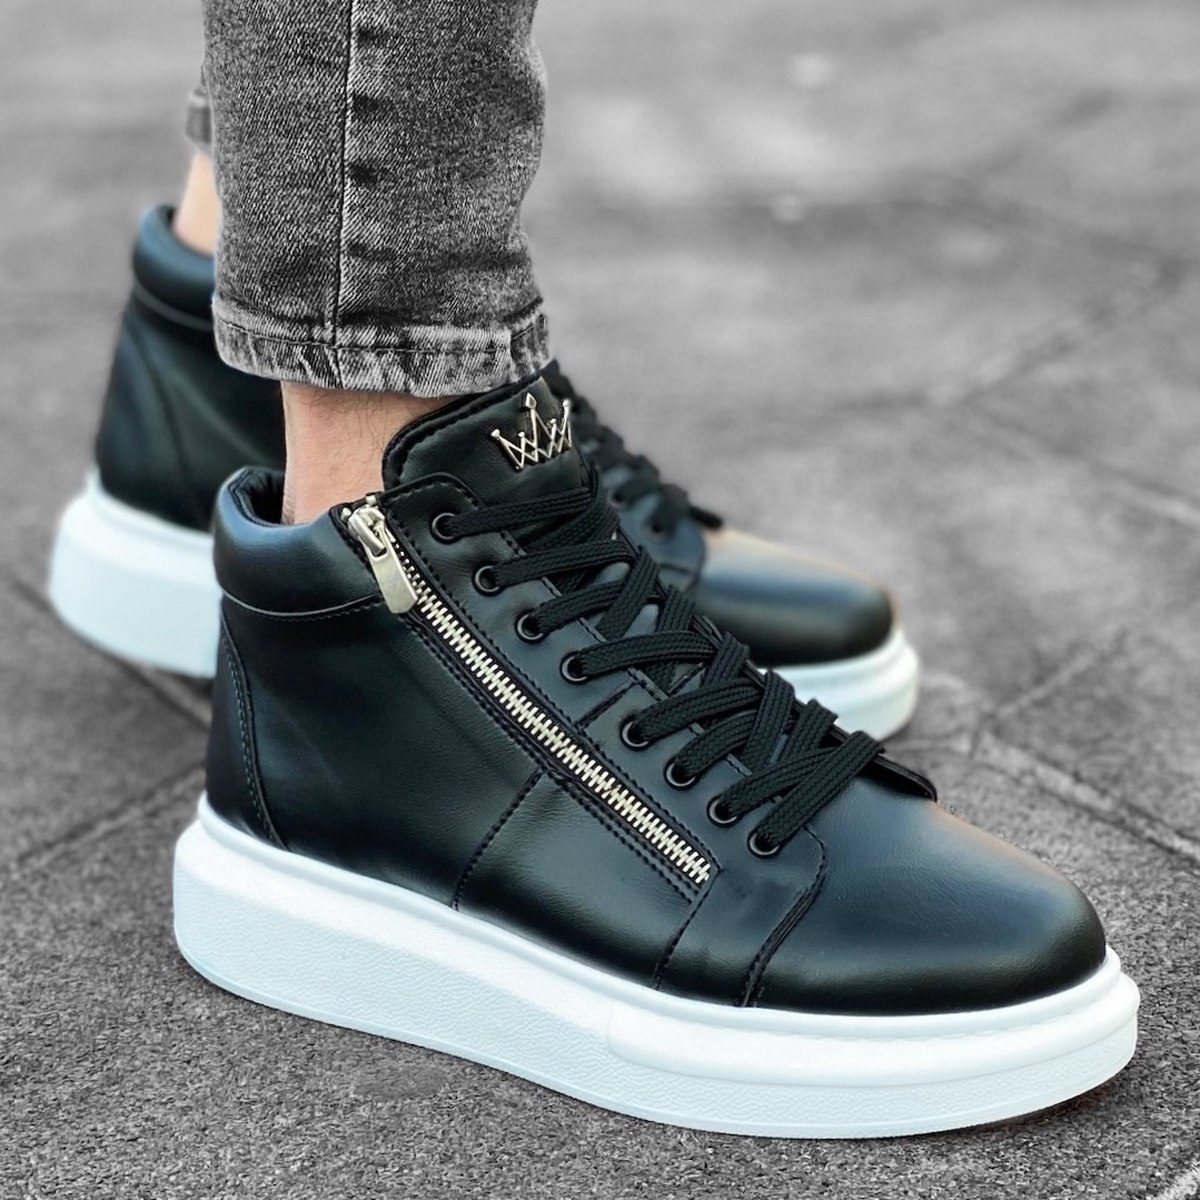 Hype Sole Zipped Style High Top Sneakers in Black